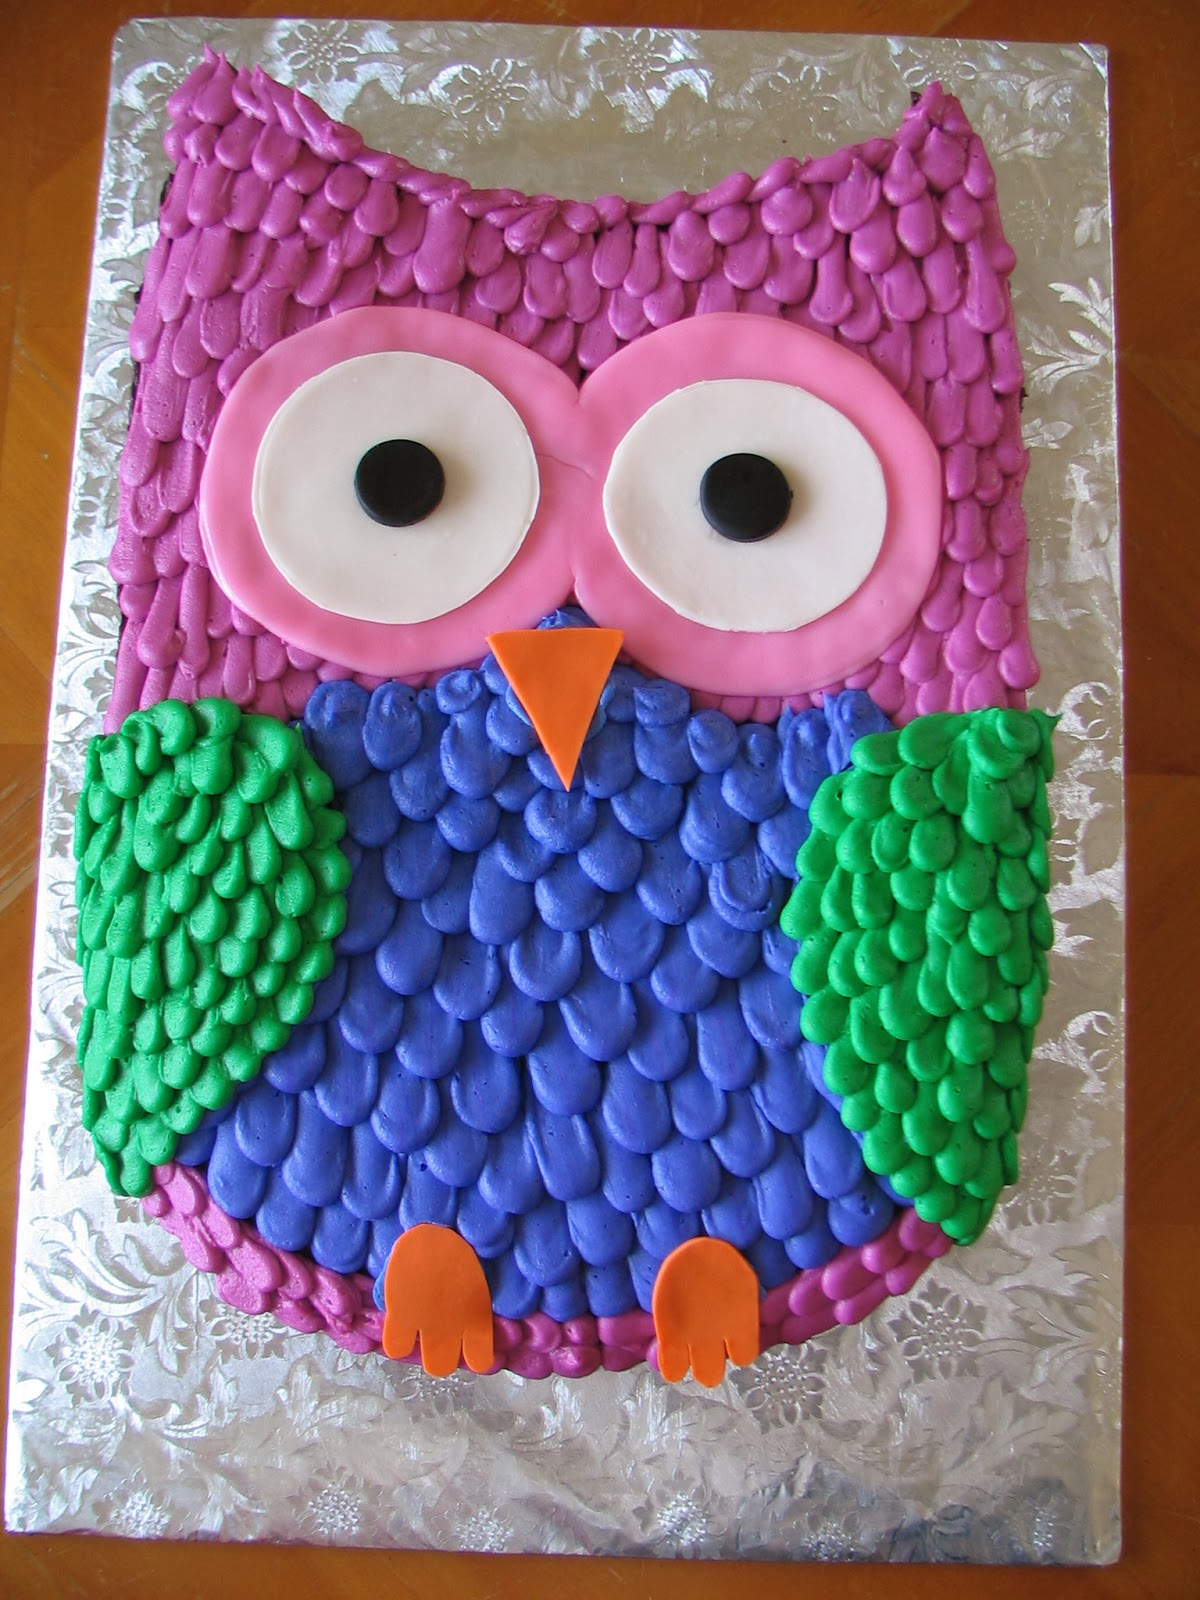 Easy Owl Cake Design : Piped Dreams: Owl Cake